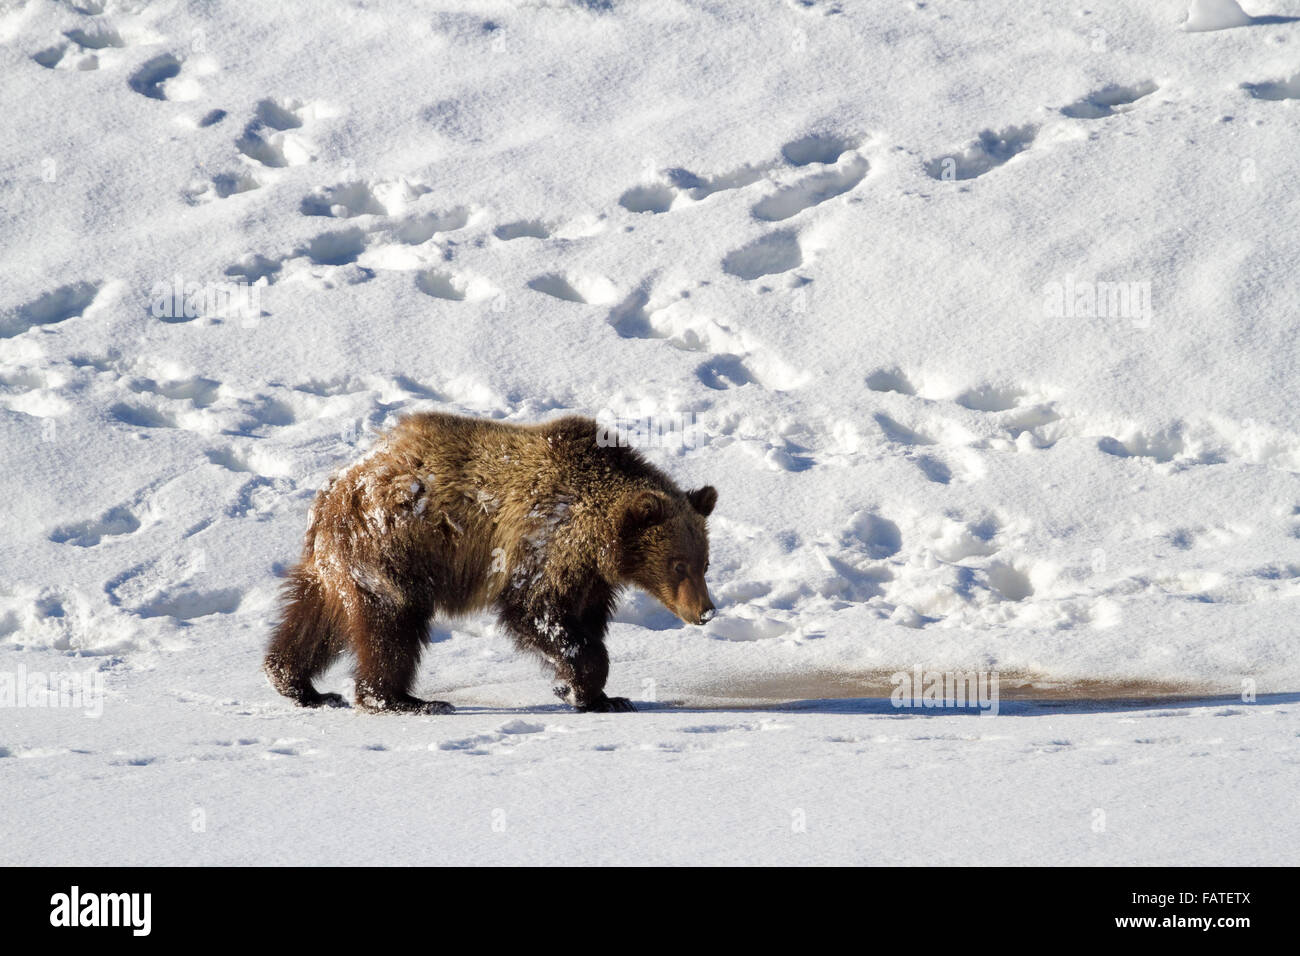 A cub of Grizzly Bear #610's walks along the frozen shores of Oxbow Bend in Grand Teton National Park as bear - Stock Image